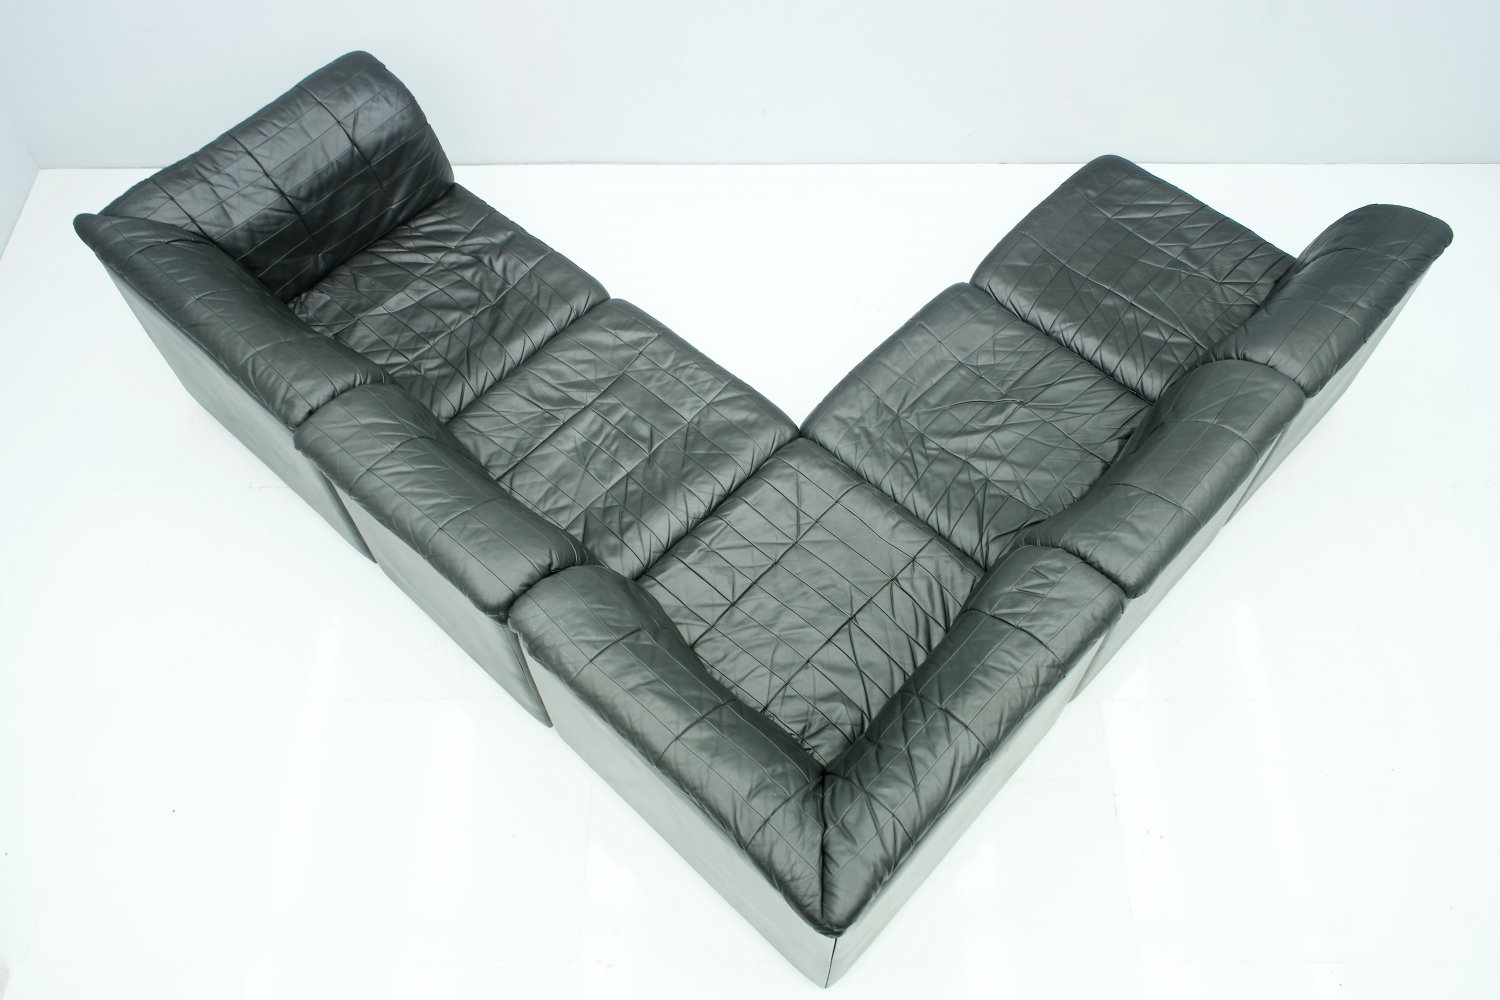 Black Leather Patchwork Sectional Sofa with 5 Elements, 1970s